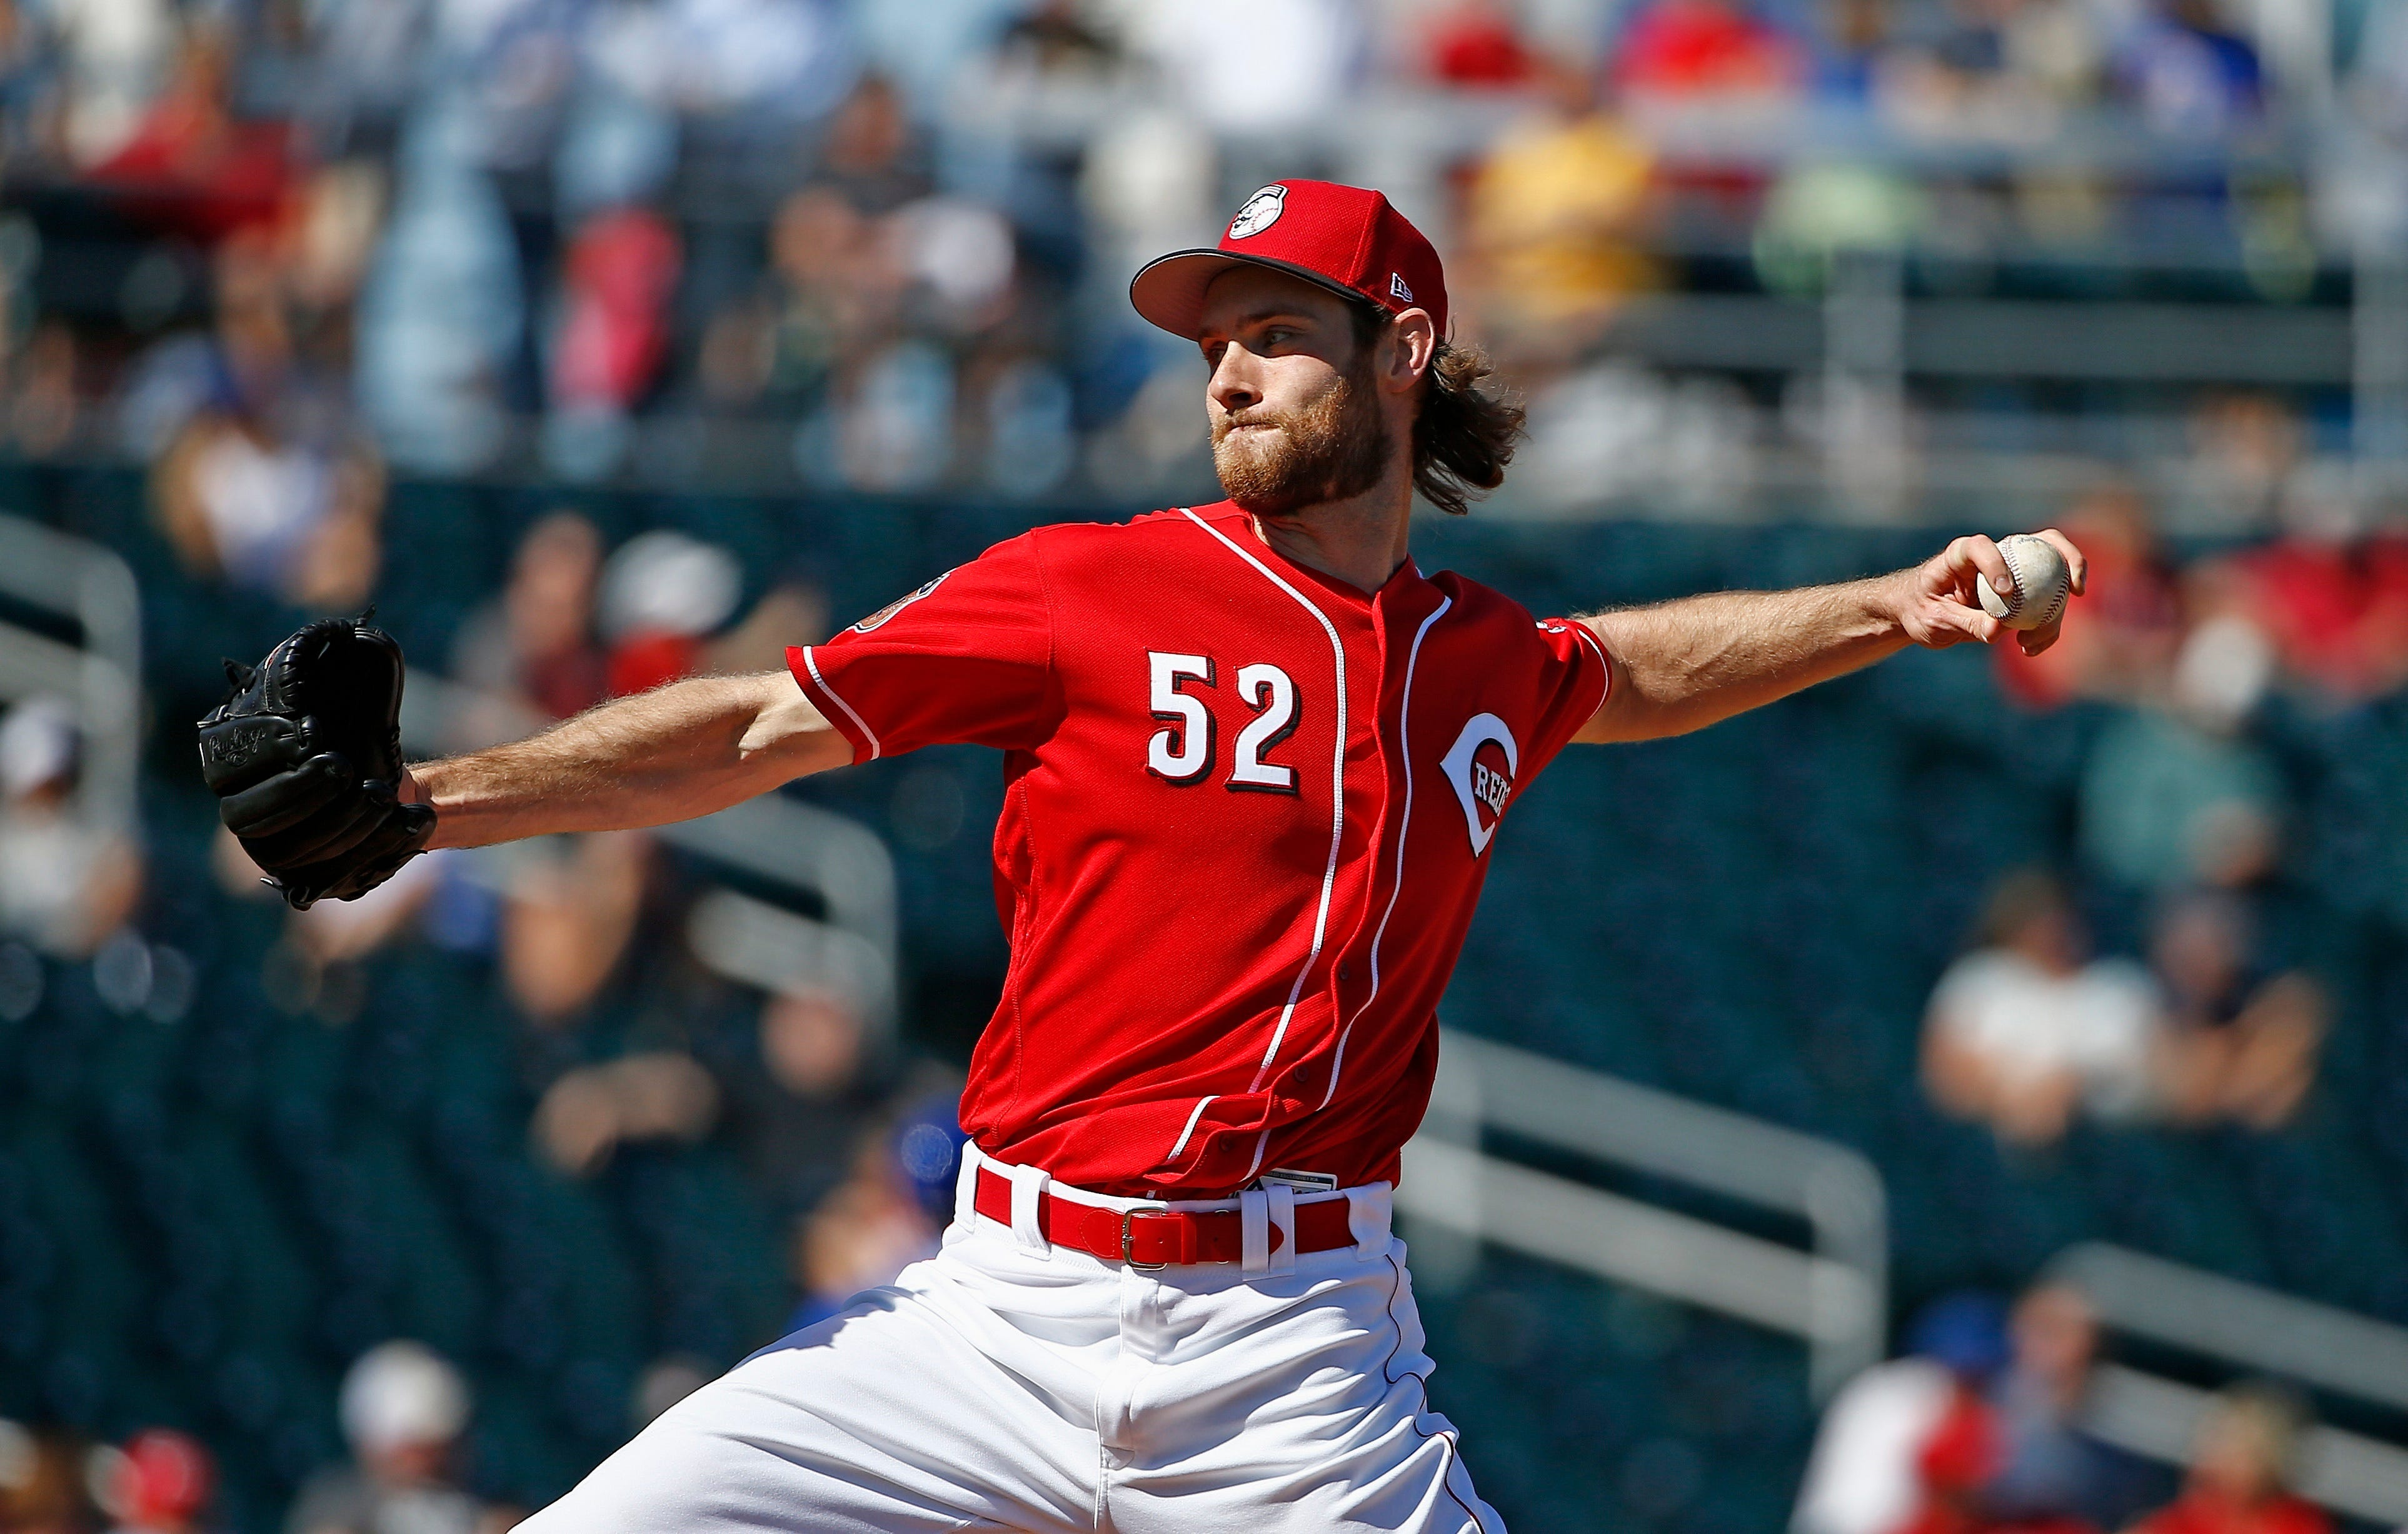 Game Report: White Sox 4, Reds 2